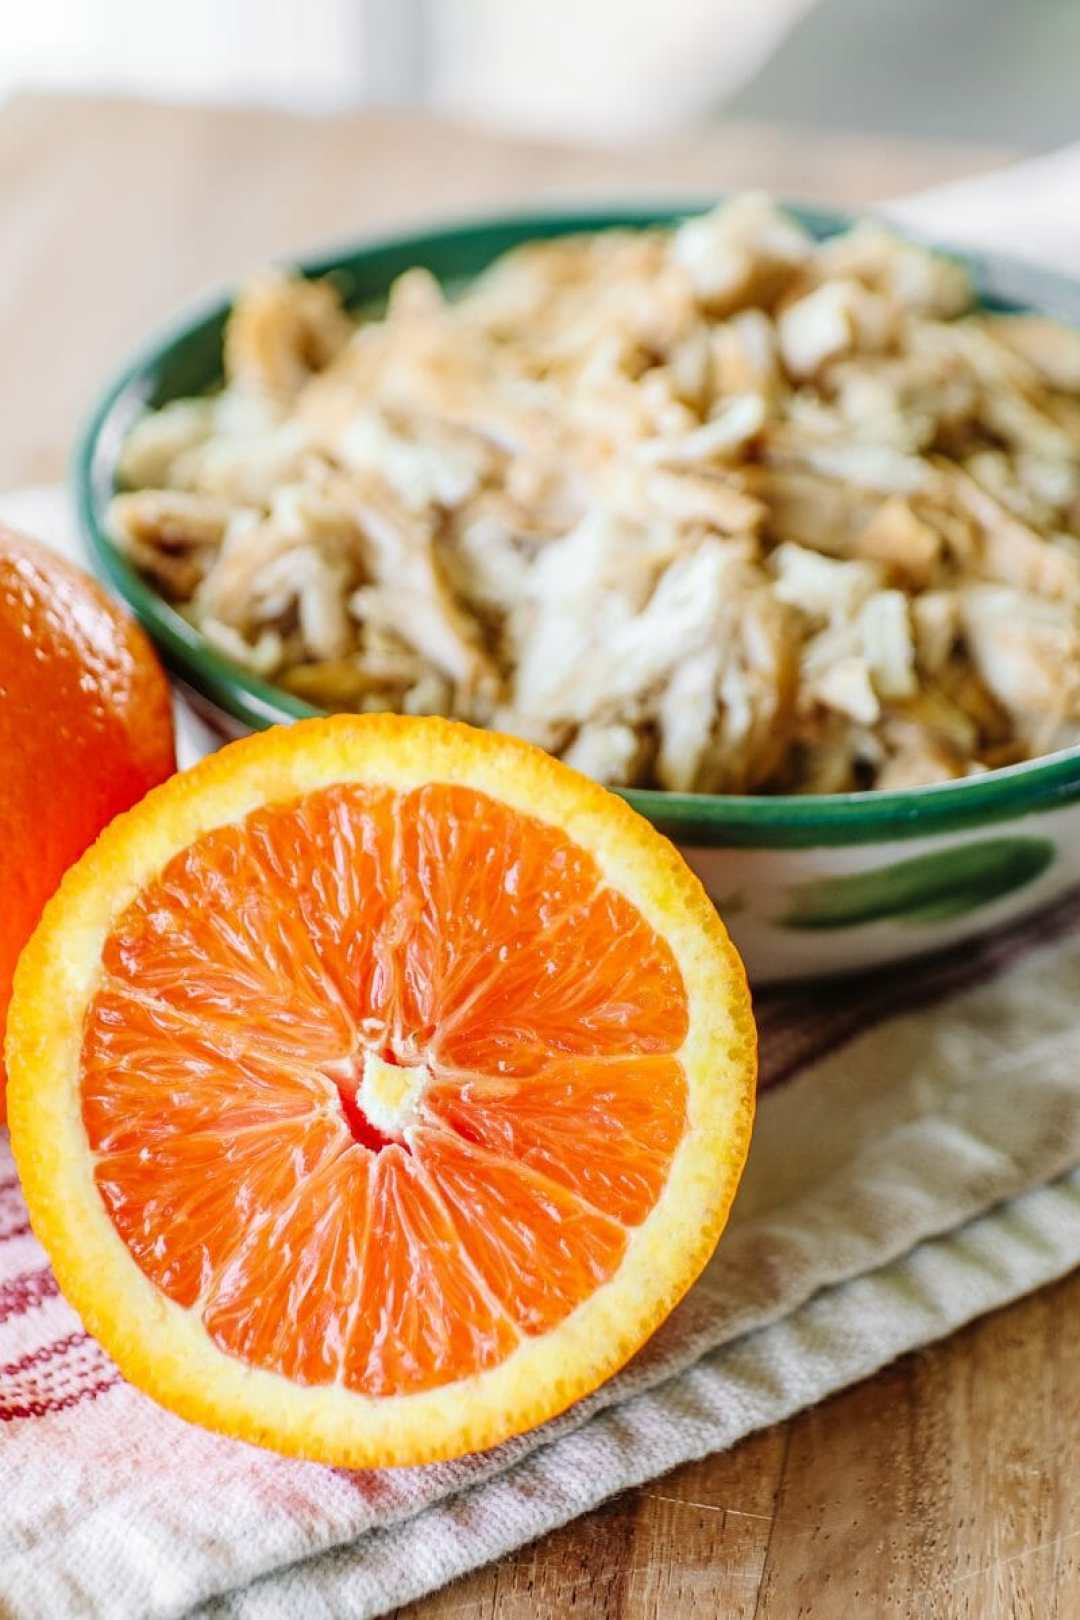 The Easiest Crockpot Chicken, Made With Sunkist Oranges by JC Phelps of JCP Eats, A Kentucky Based Food, Travel, and Lifestyle Blog 2